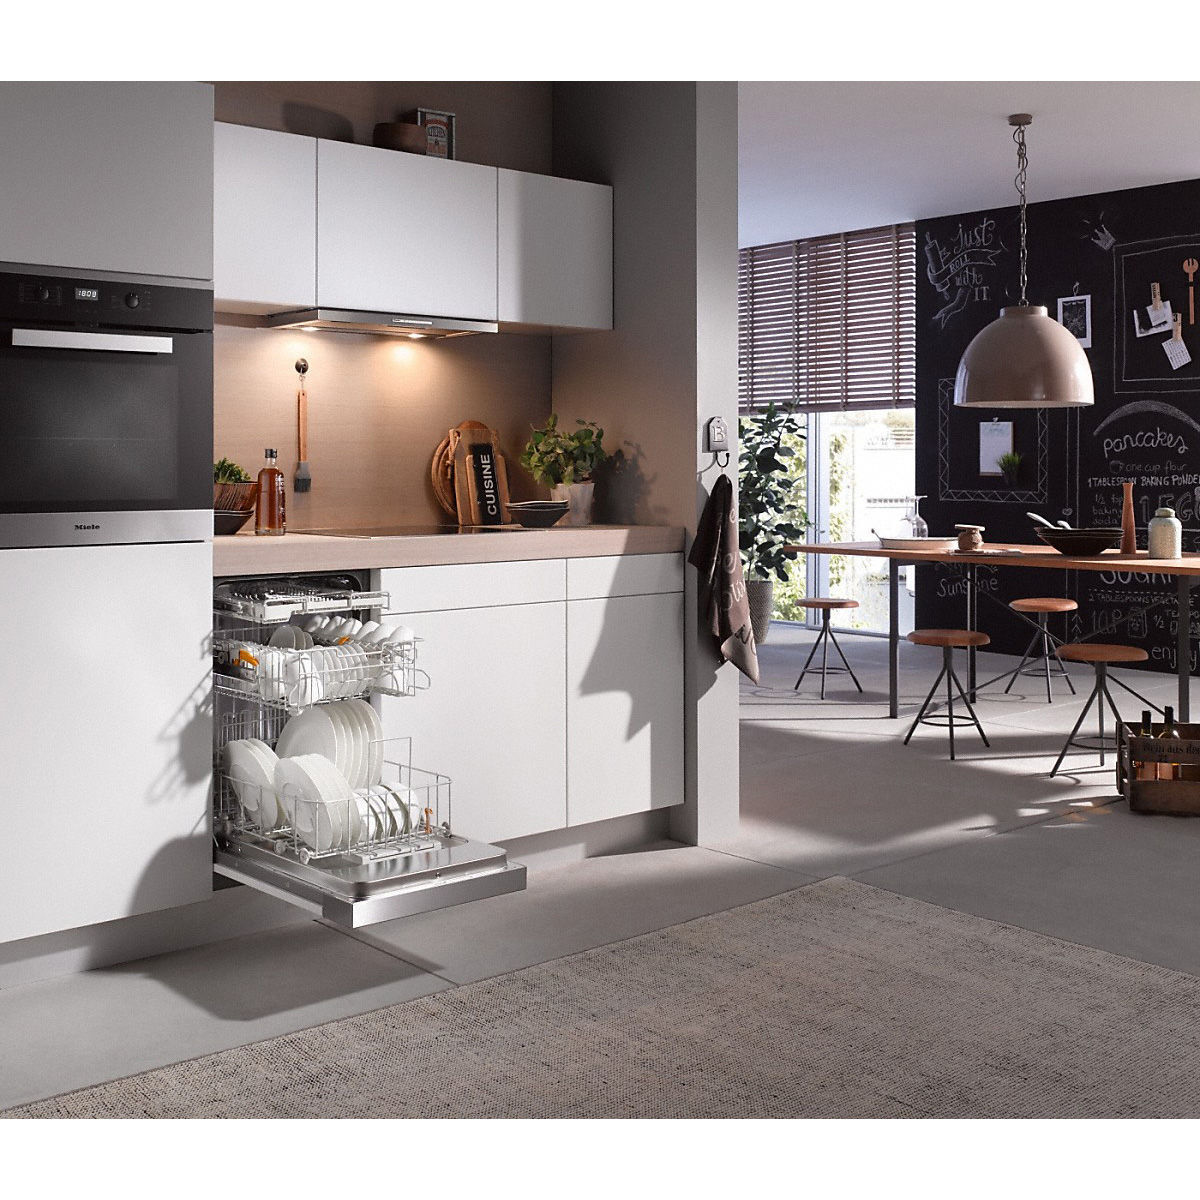 miele g 4820 scu unterbau geschirrsp ler a karstadt online shop. Black Bedroom Furniture Sets. Home Design Ideas